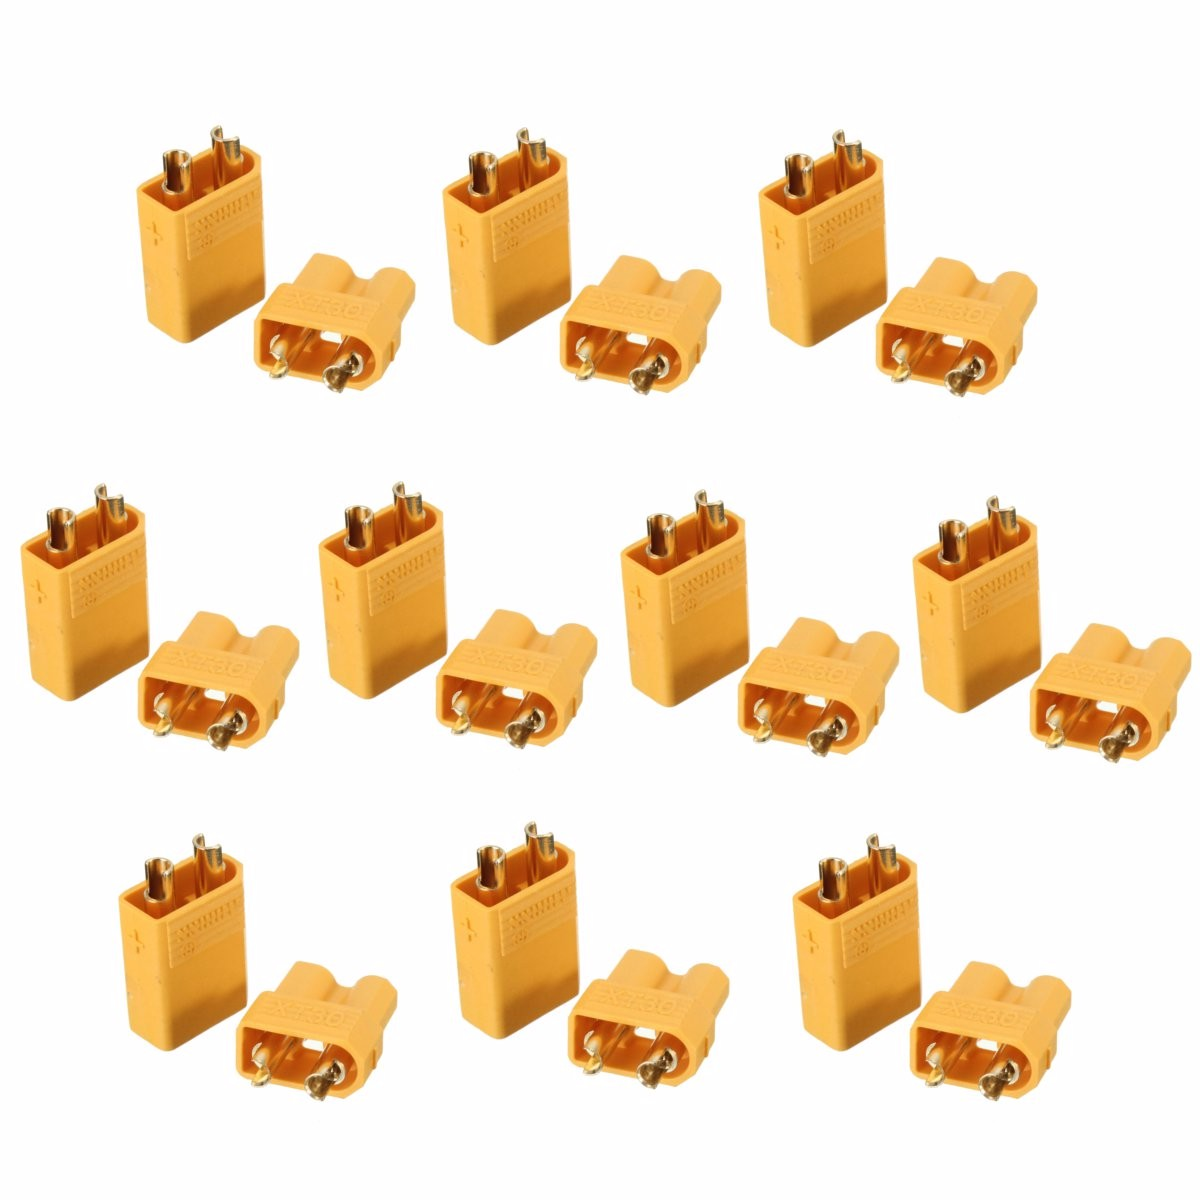 10Pcs XT60 XT30 T Plug 5 Male 5 Female Bullet Connectors Plug For RC Quadcopter FPV Racing Drone Lipo Battery Tinywhoop(China)